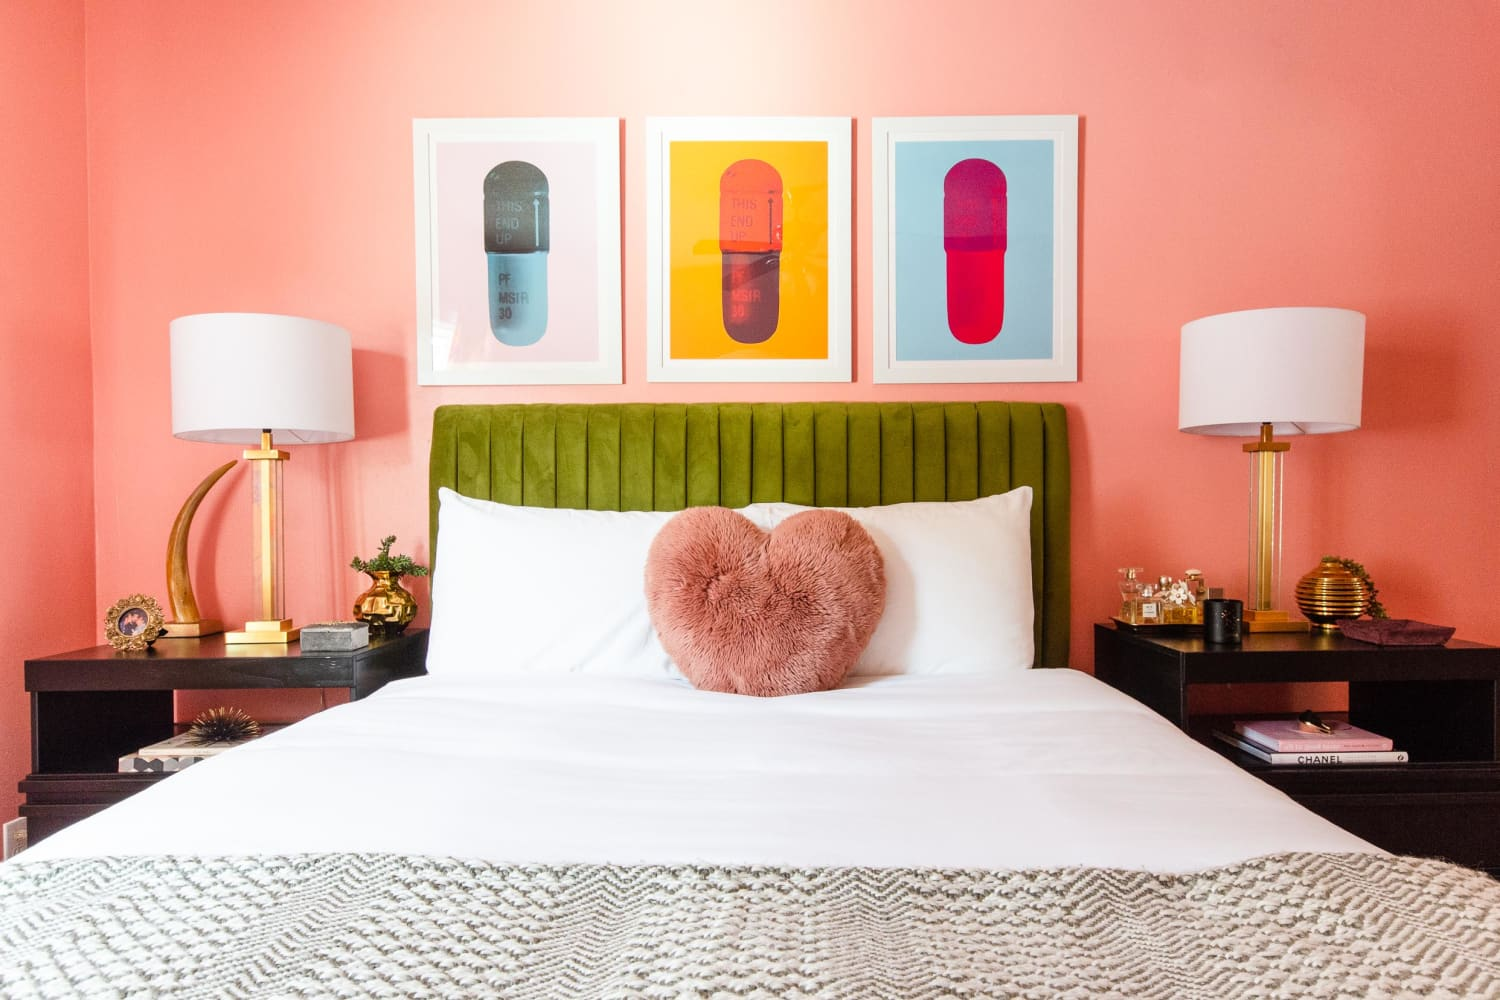 designers-on-how-to-bring-romance-to-the-bedroom-according-to-your-decor-style